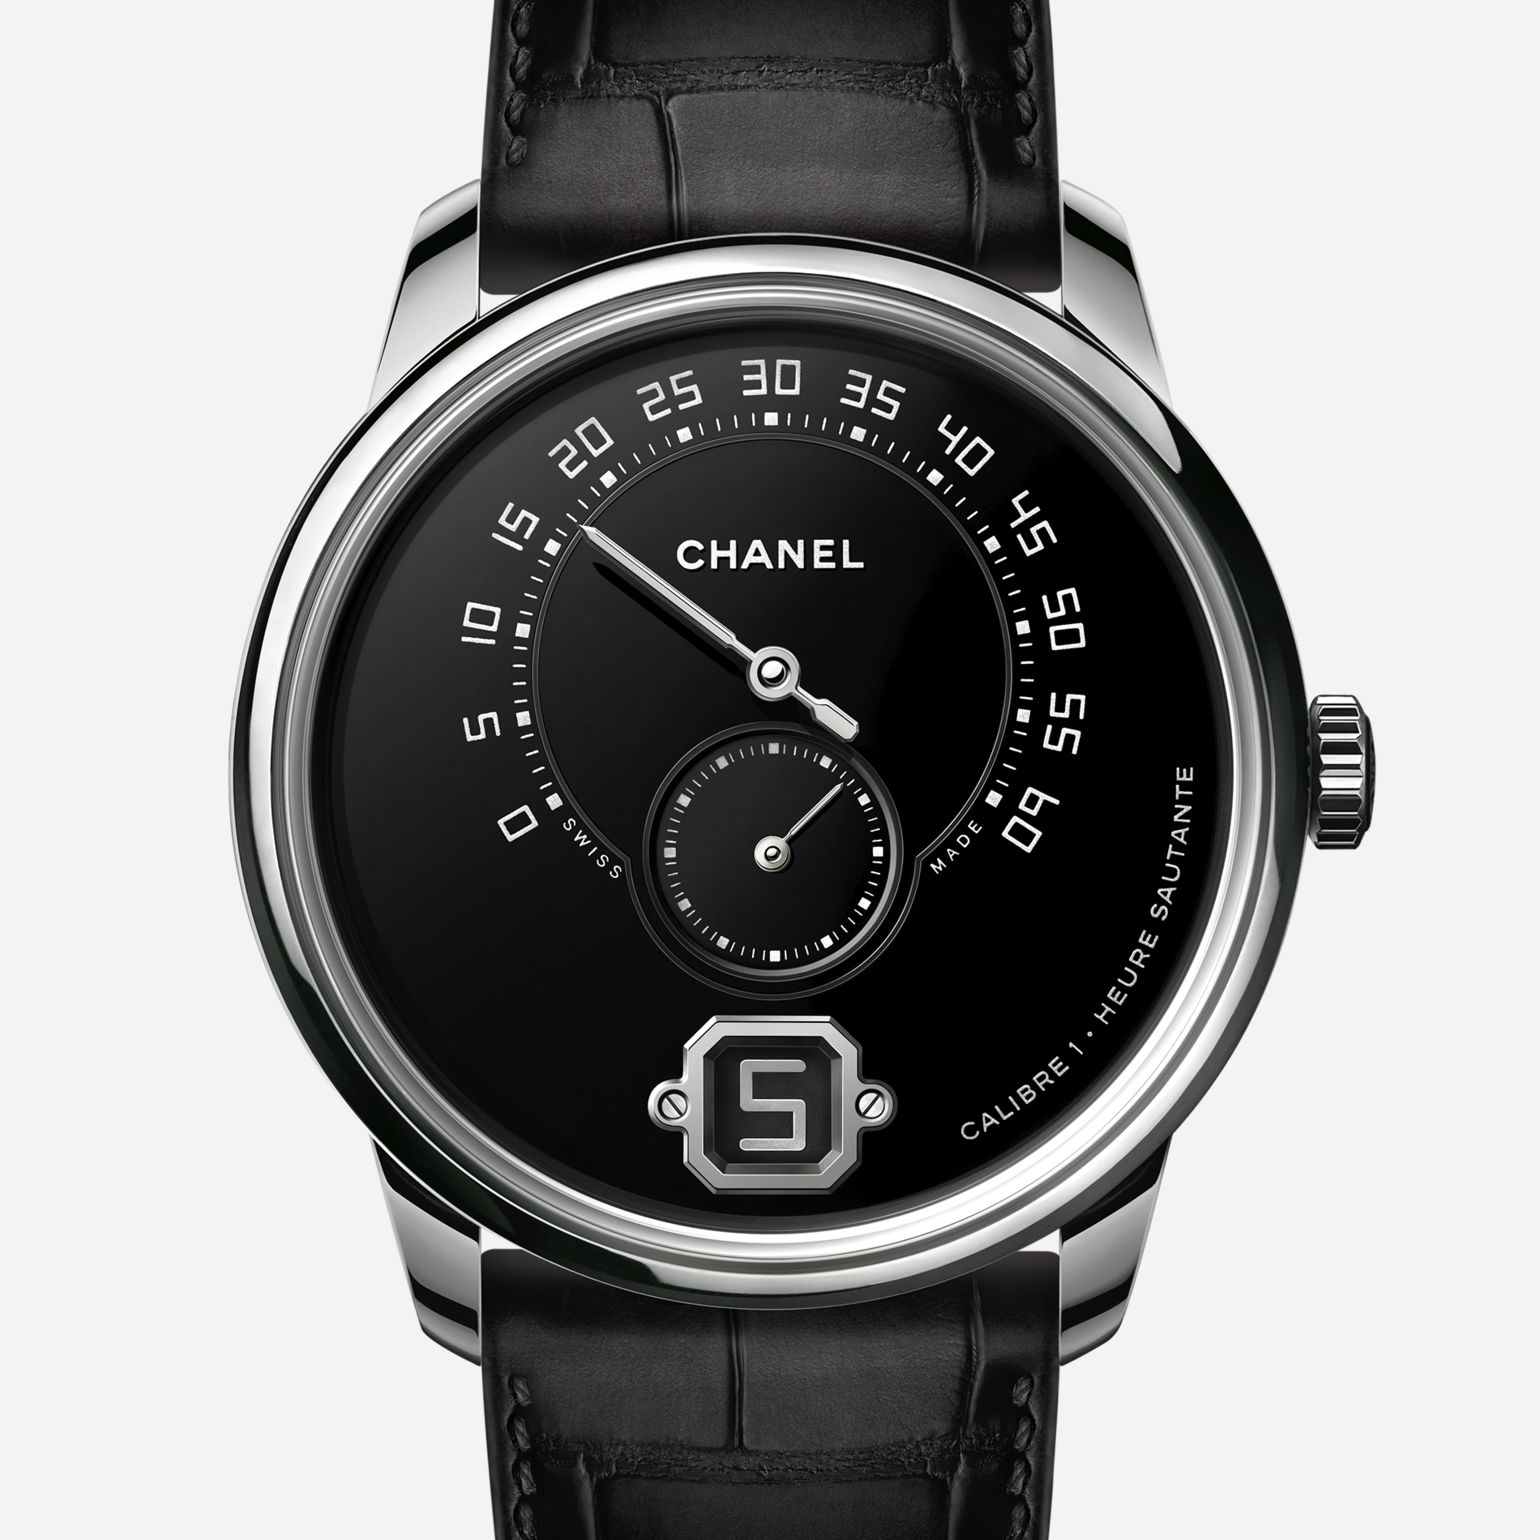 Monsieur Watch Platinum, « Grand Feu » enamel dial with jumping hour, retrograde minute indication at 240° and small second counter